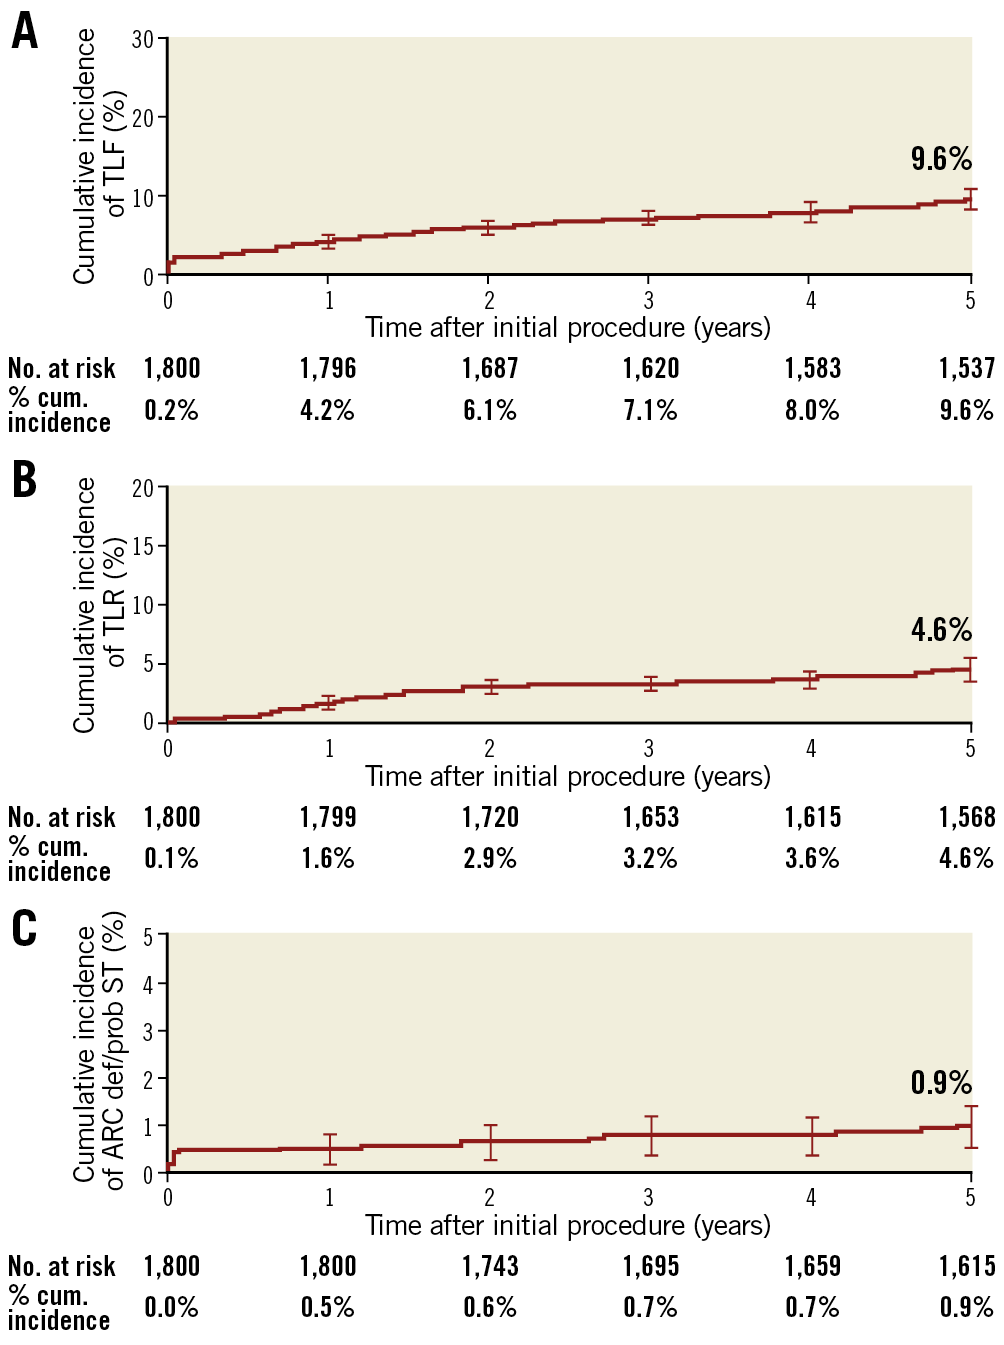 Figure 2. Cumulative incidence of events using Kaplan-Meier analysis to 5 years. A) TLF. B) TLR. C) Stent thrombosis. cum.: cumulative; ST: stent thrombosis; TLF: target lesion failure; TLR: target lesion revascularisation